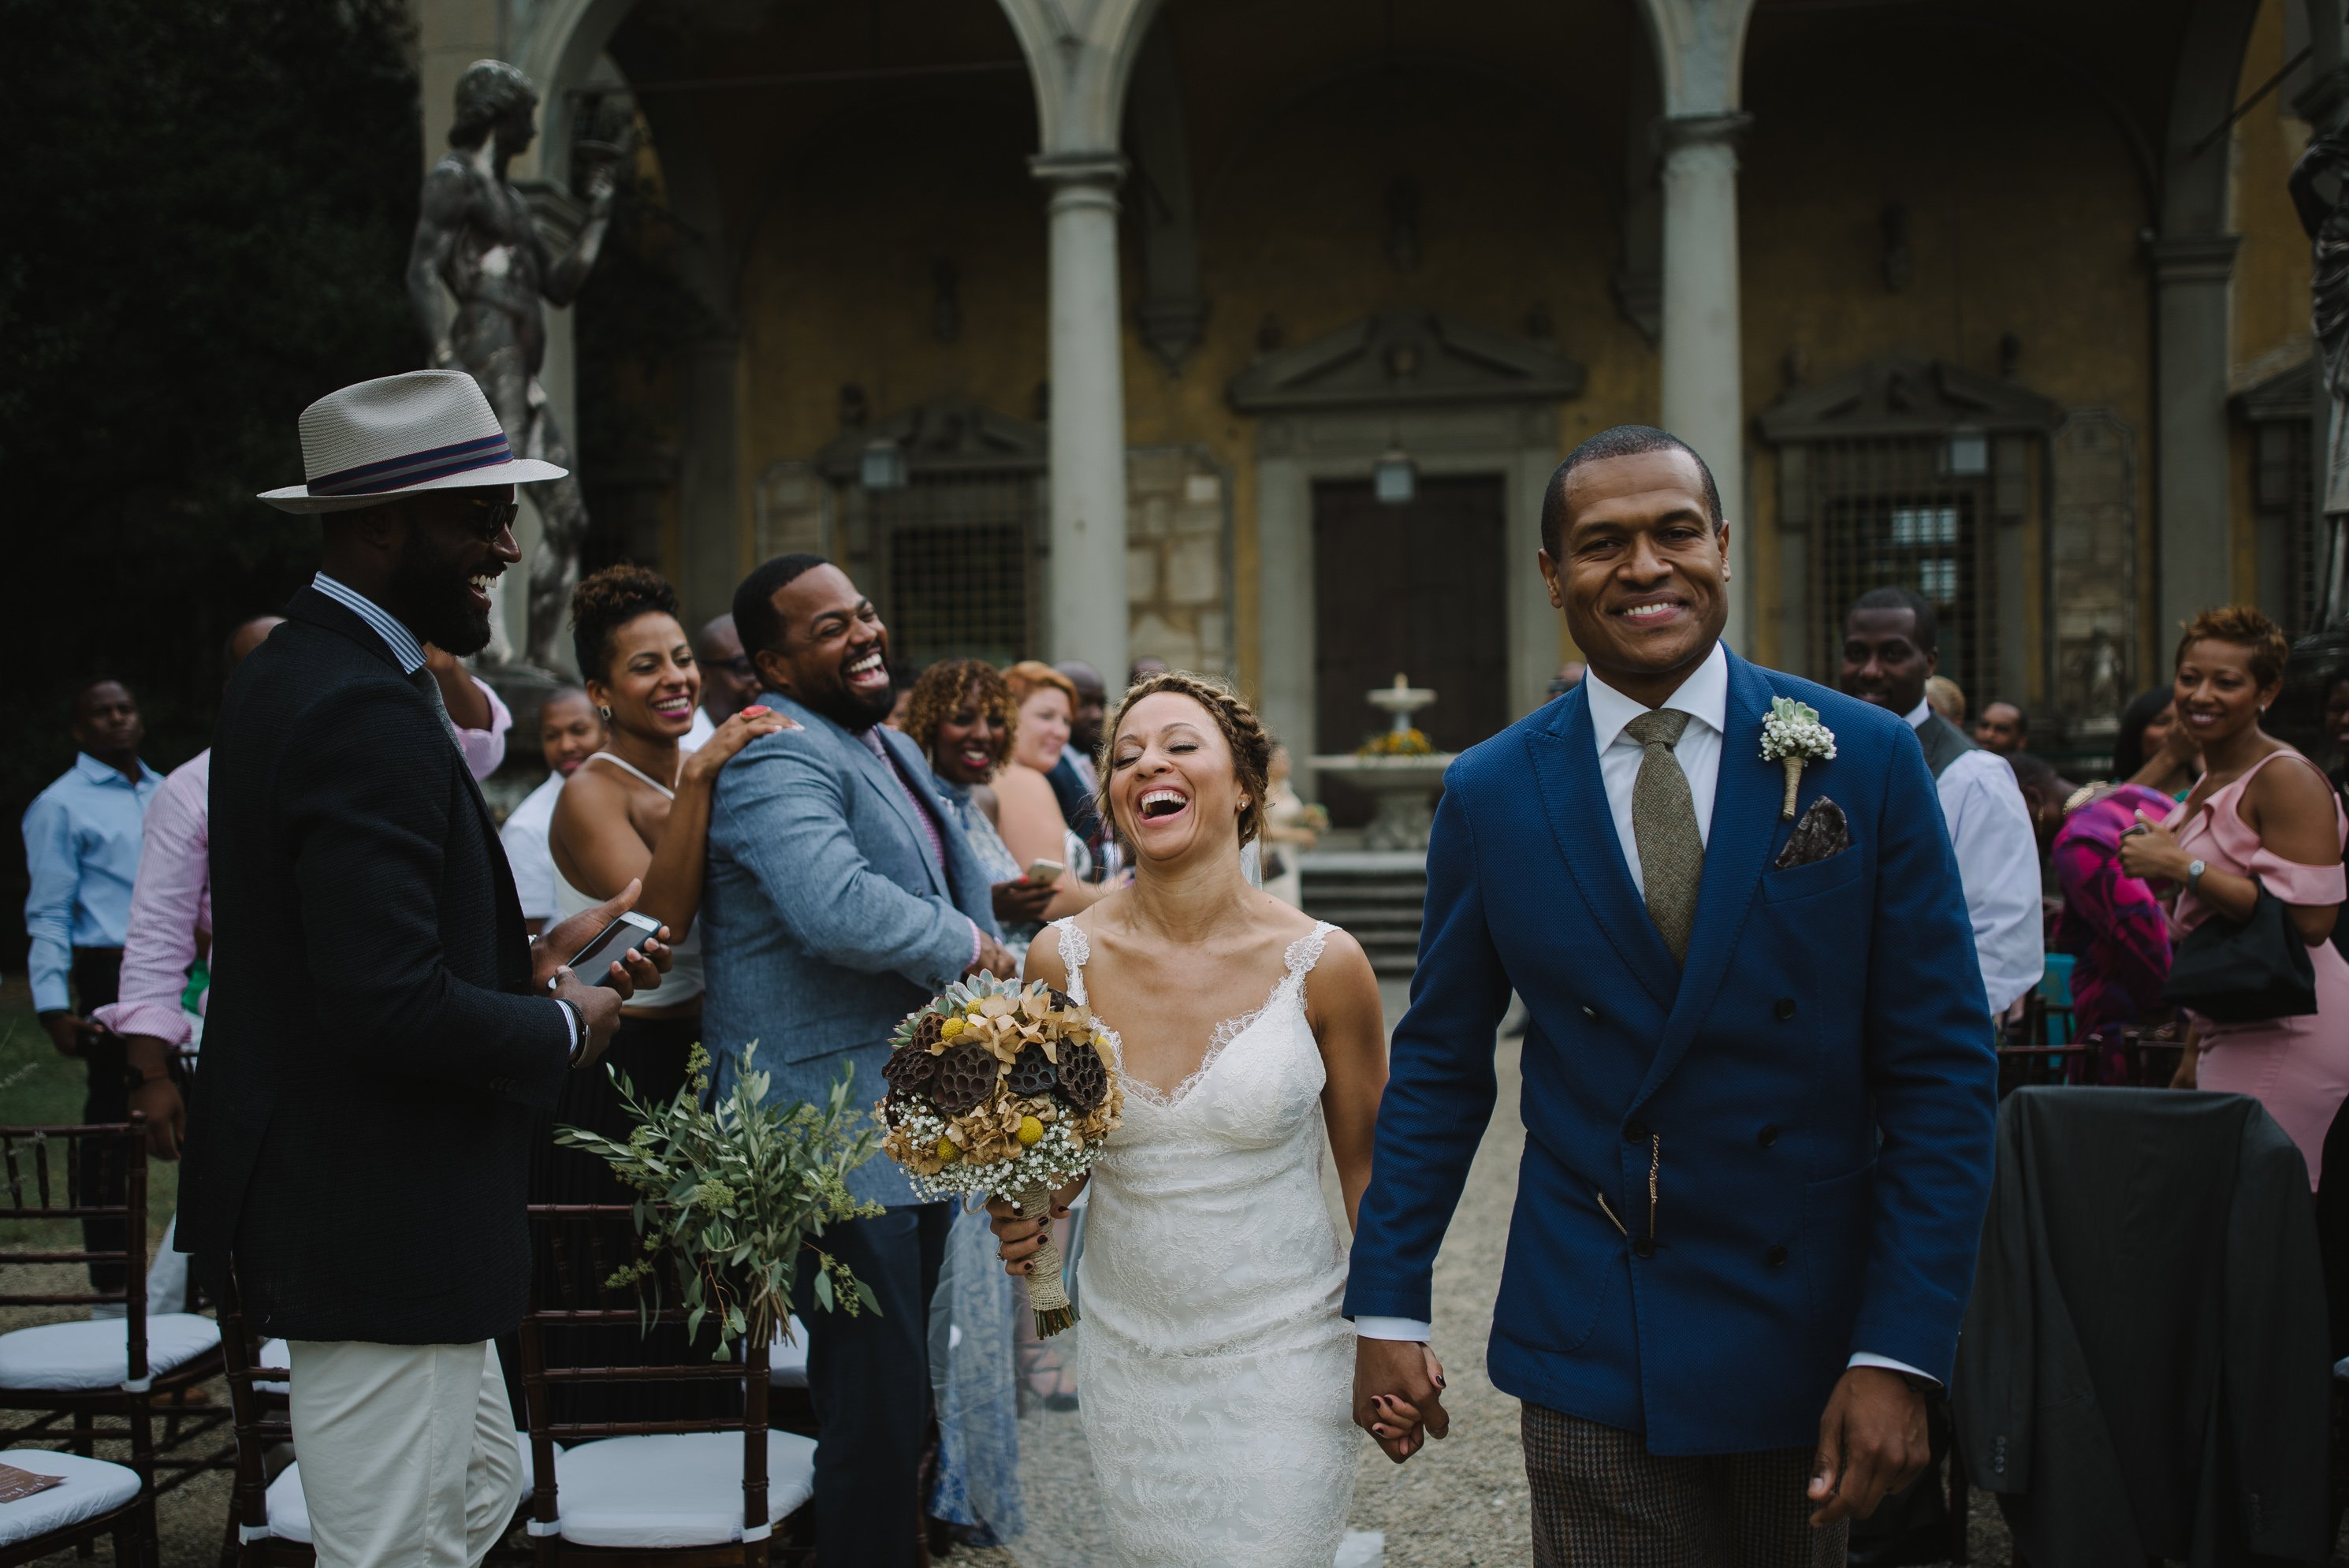 Wedding photographer at Giardino Corsini. Leticia and Troy came from US to celebrate their chic, destination wedding in Florence. Italian wedding photographer